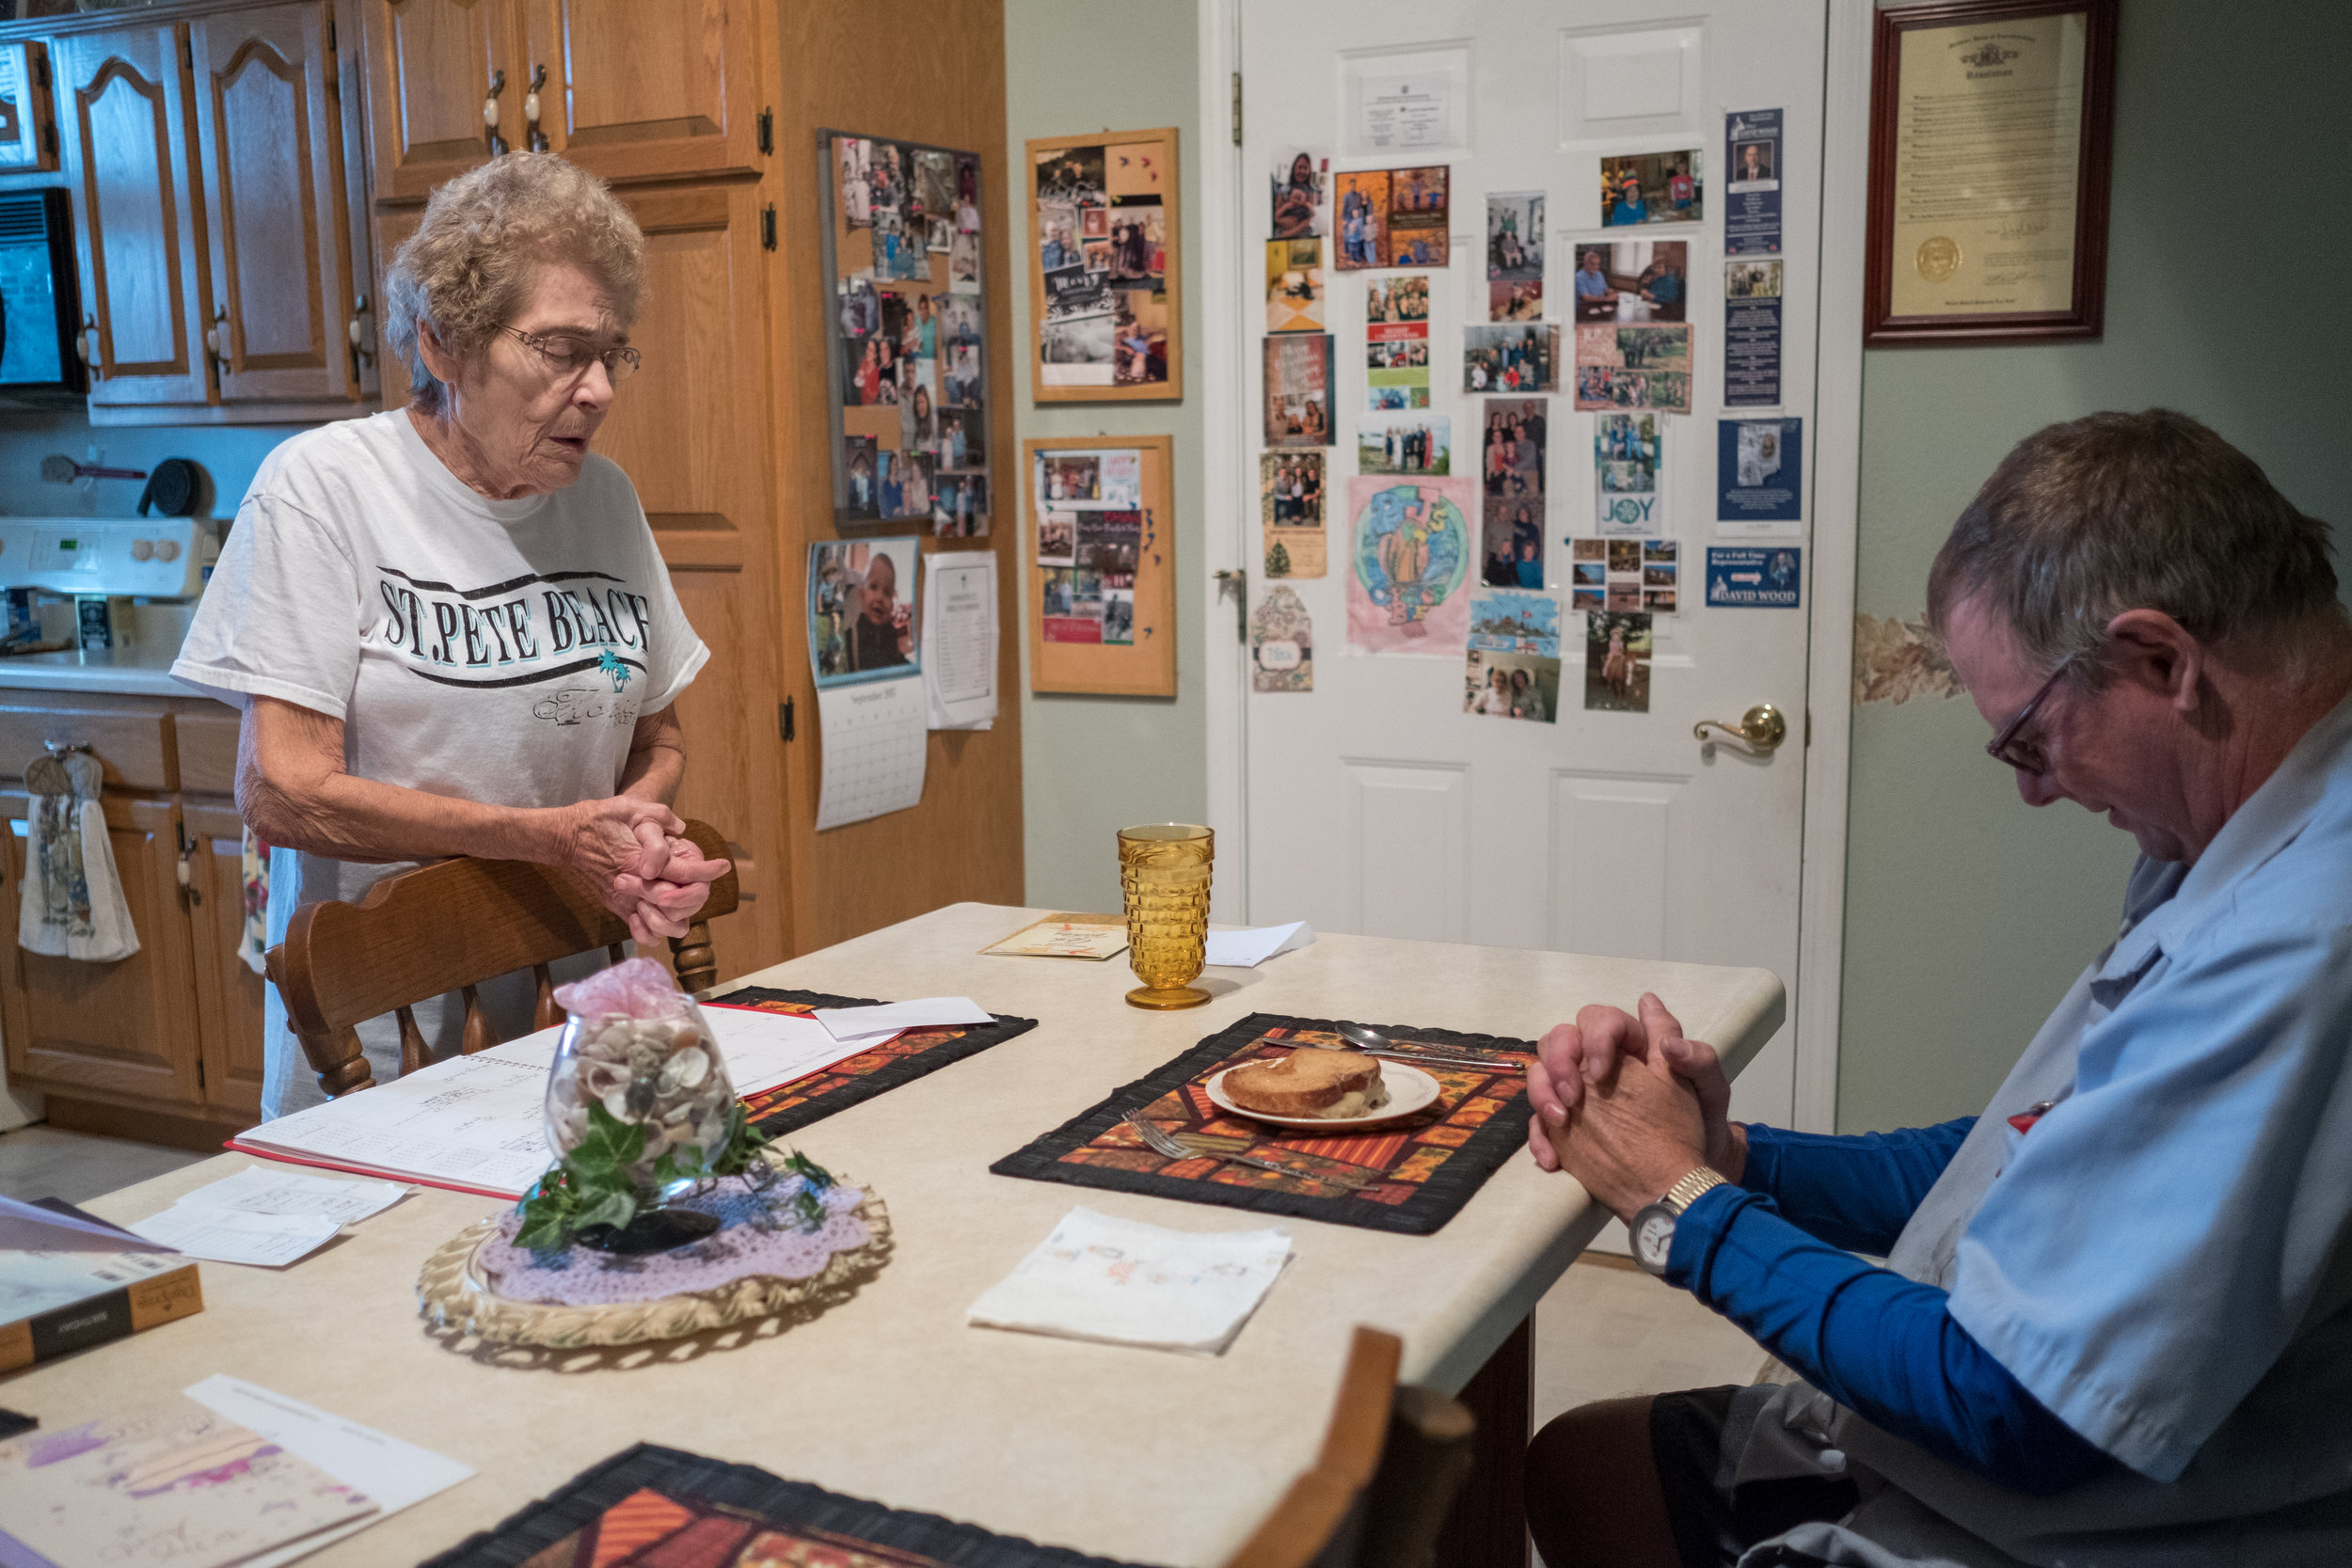 Greg and Ruth say a quick blessing before Greg eats. Ruth is 90 years old and benefits from Greg's regular visits.